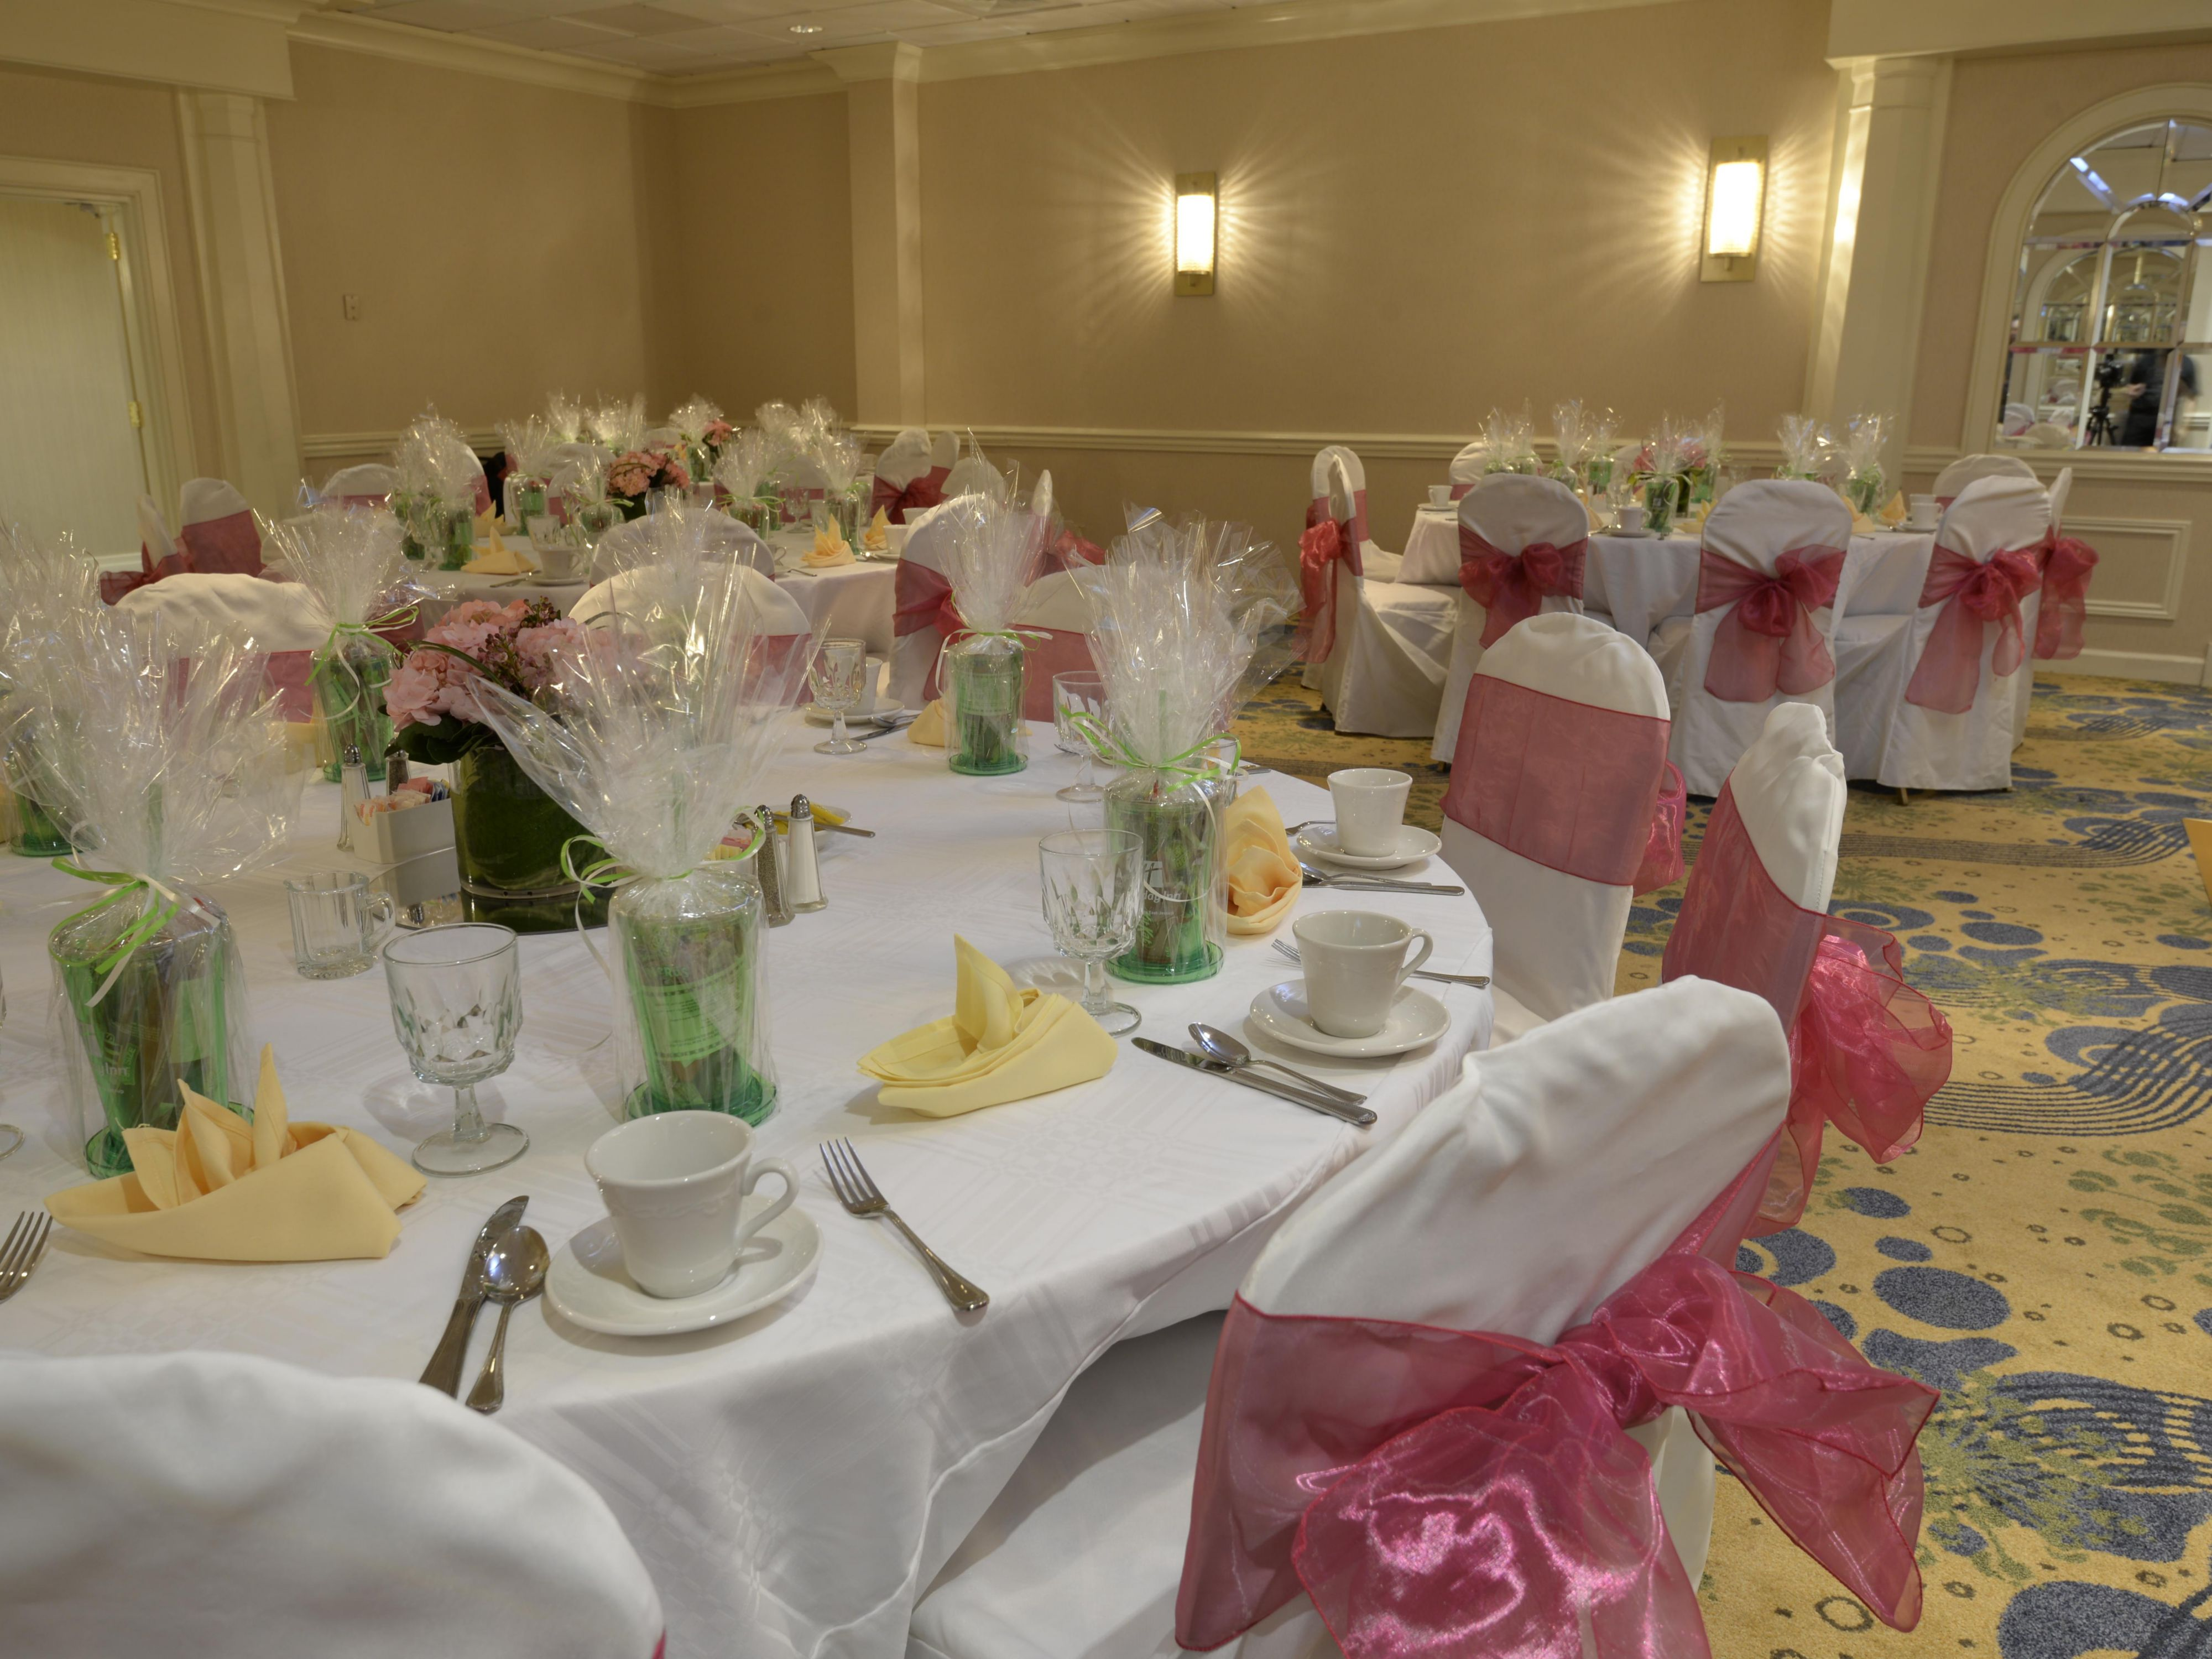 We love to help with parties, weddings, mitzvah's and more!